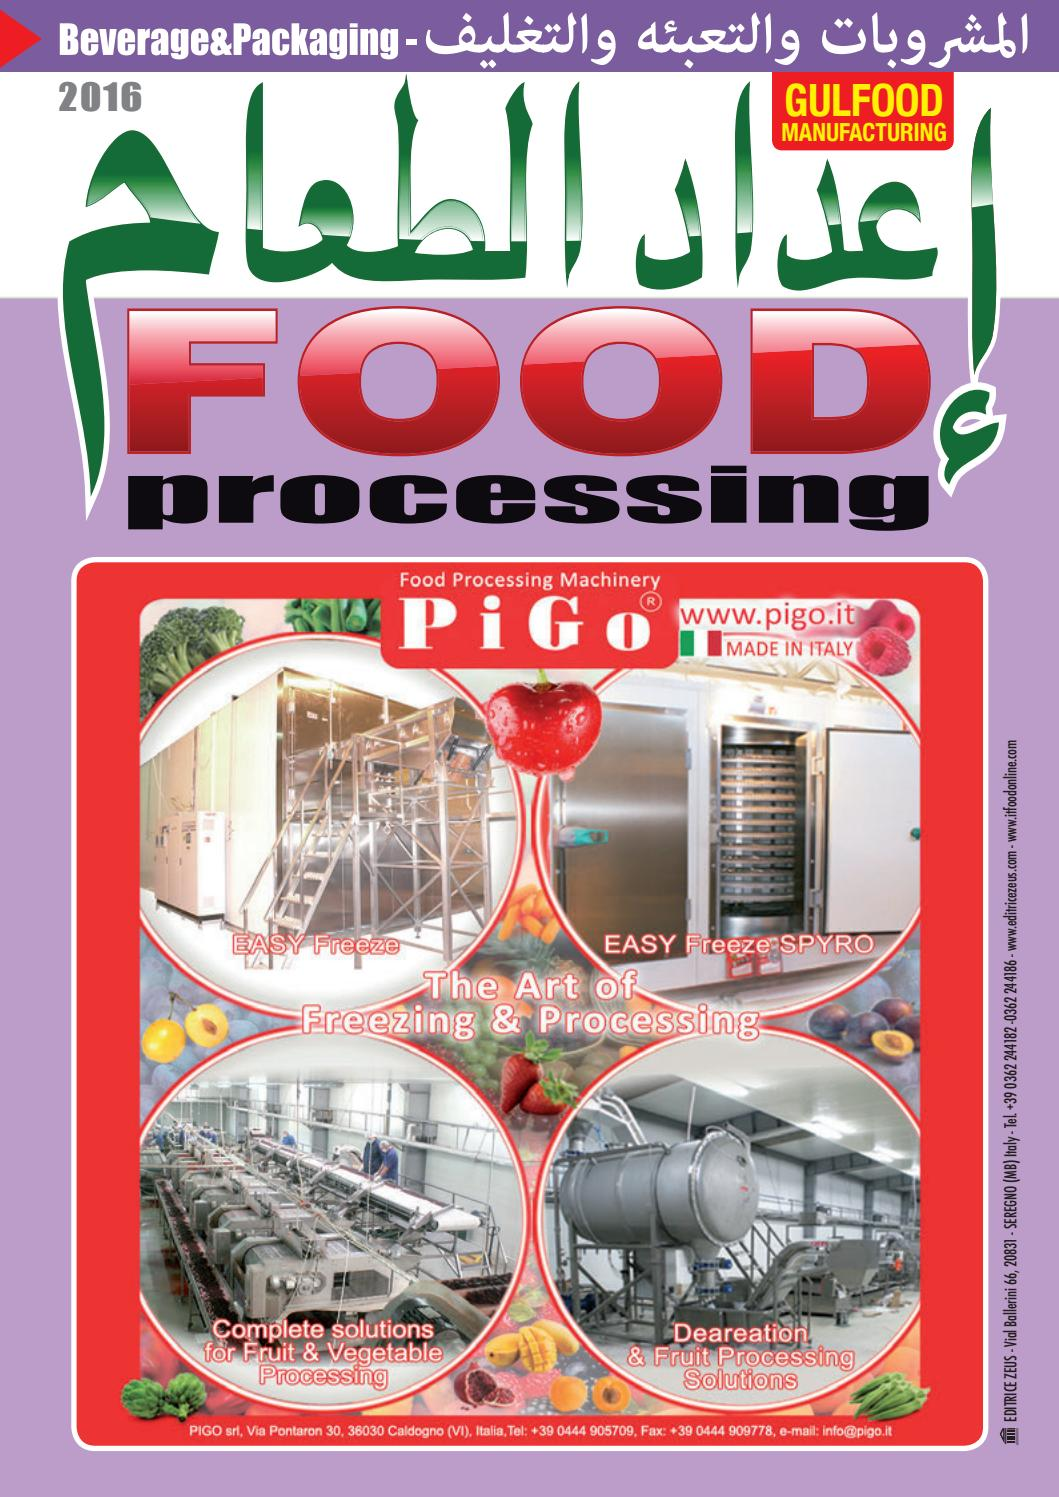 ad67edd1e FOOD PROCESSING (Arabic and English issue) - 2016 - October by Editrice  Zeus - issuu